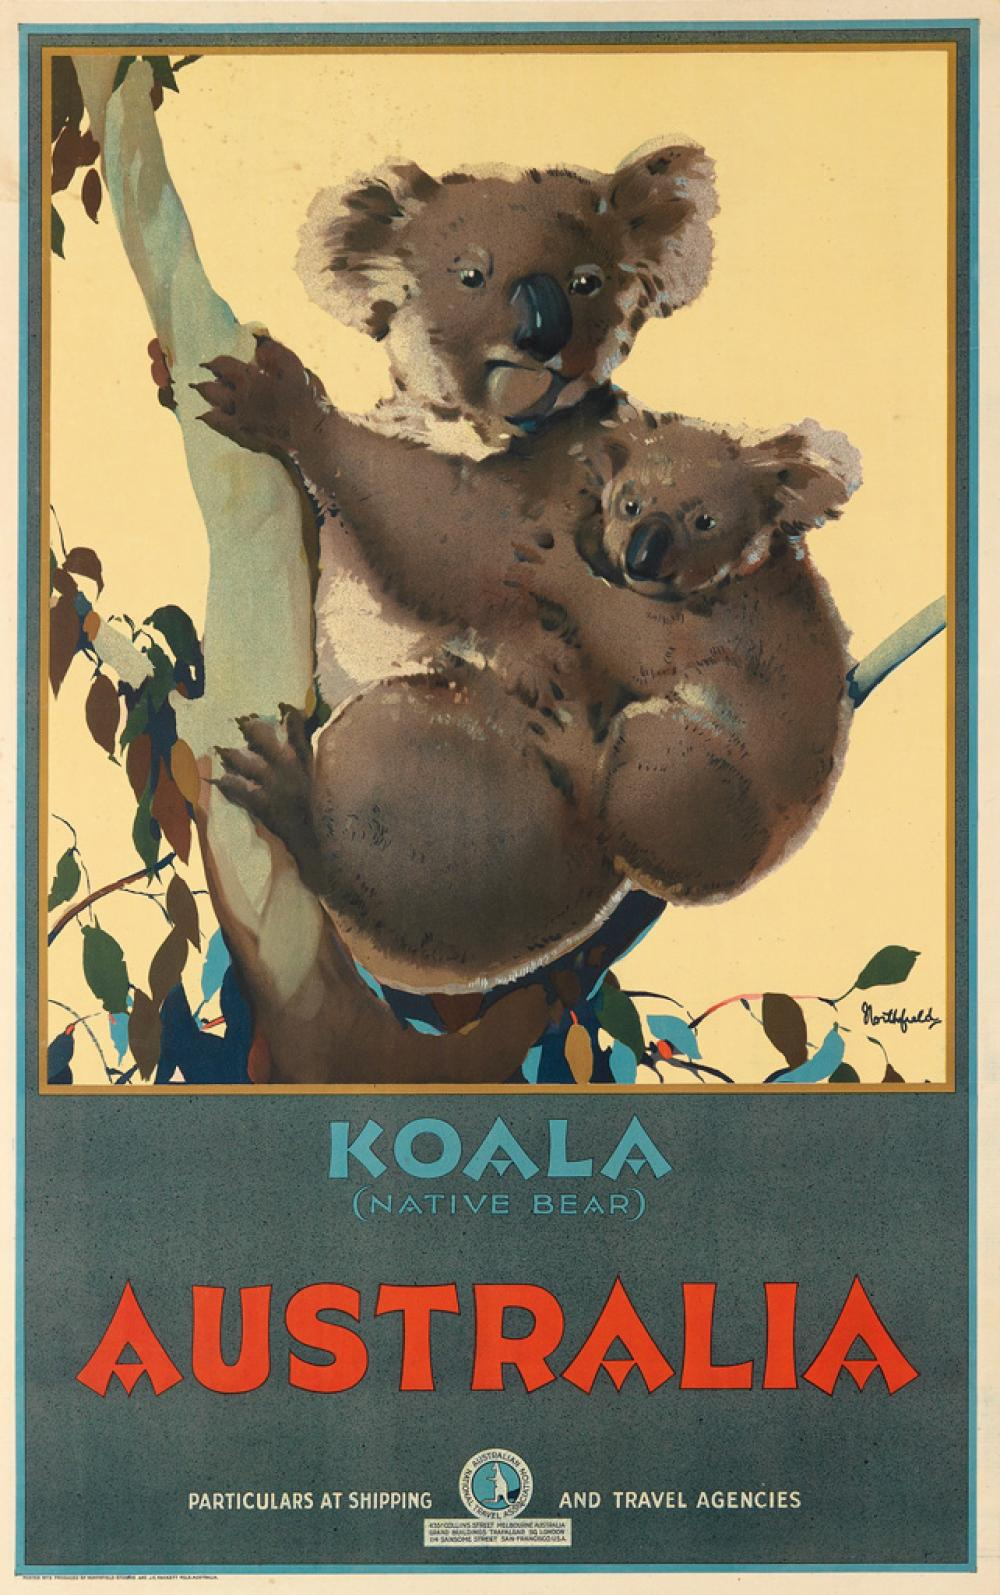 JAMES NORTHFIELD (1887-1973). AUSTRALIA / KOALA (NATIVE BEAR). 1931. 39x25 inches, 99x63 cm. J.E. Hackett, Melbourne.